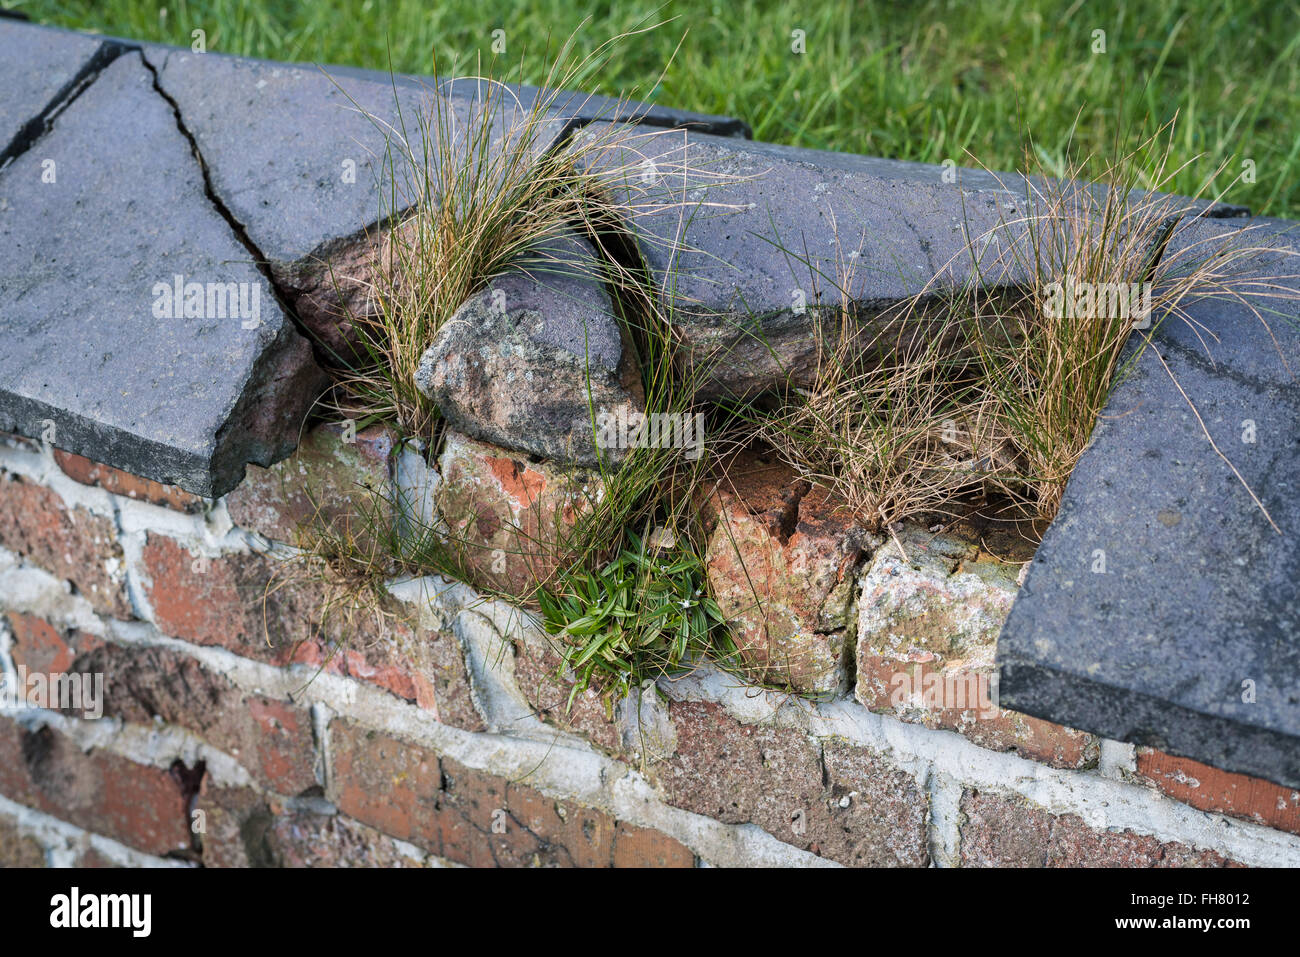 Broken, Cracked And Overgrown Victorian Garden Wall Capping.